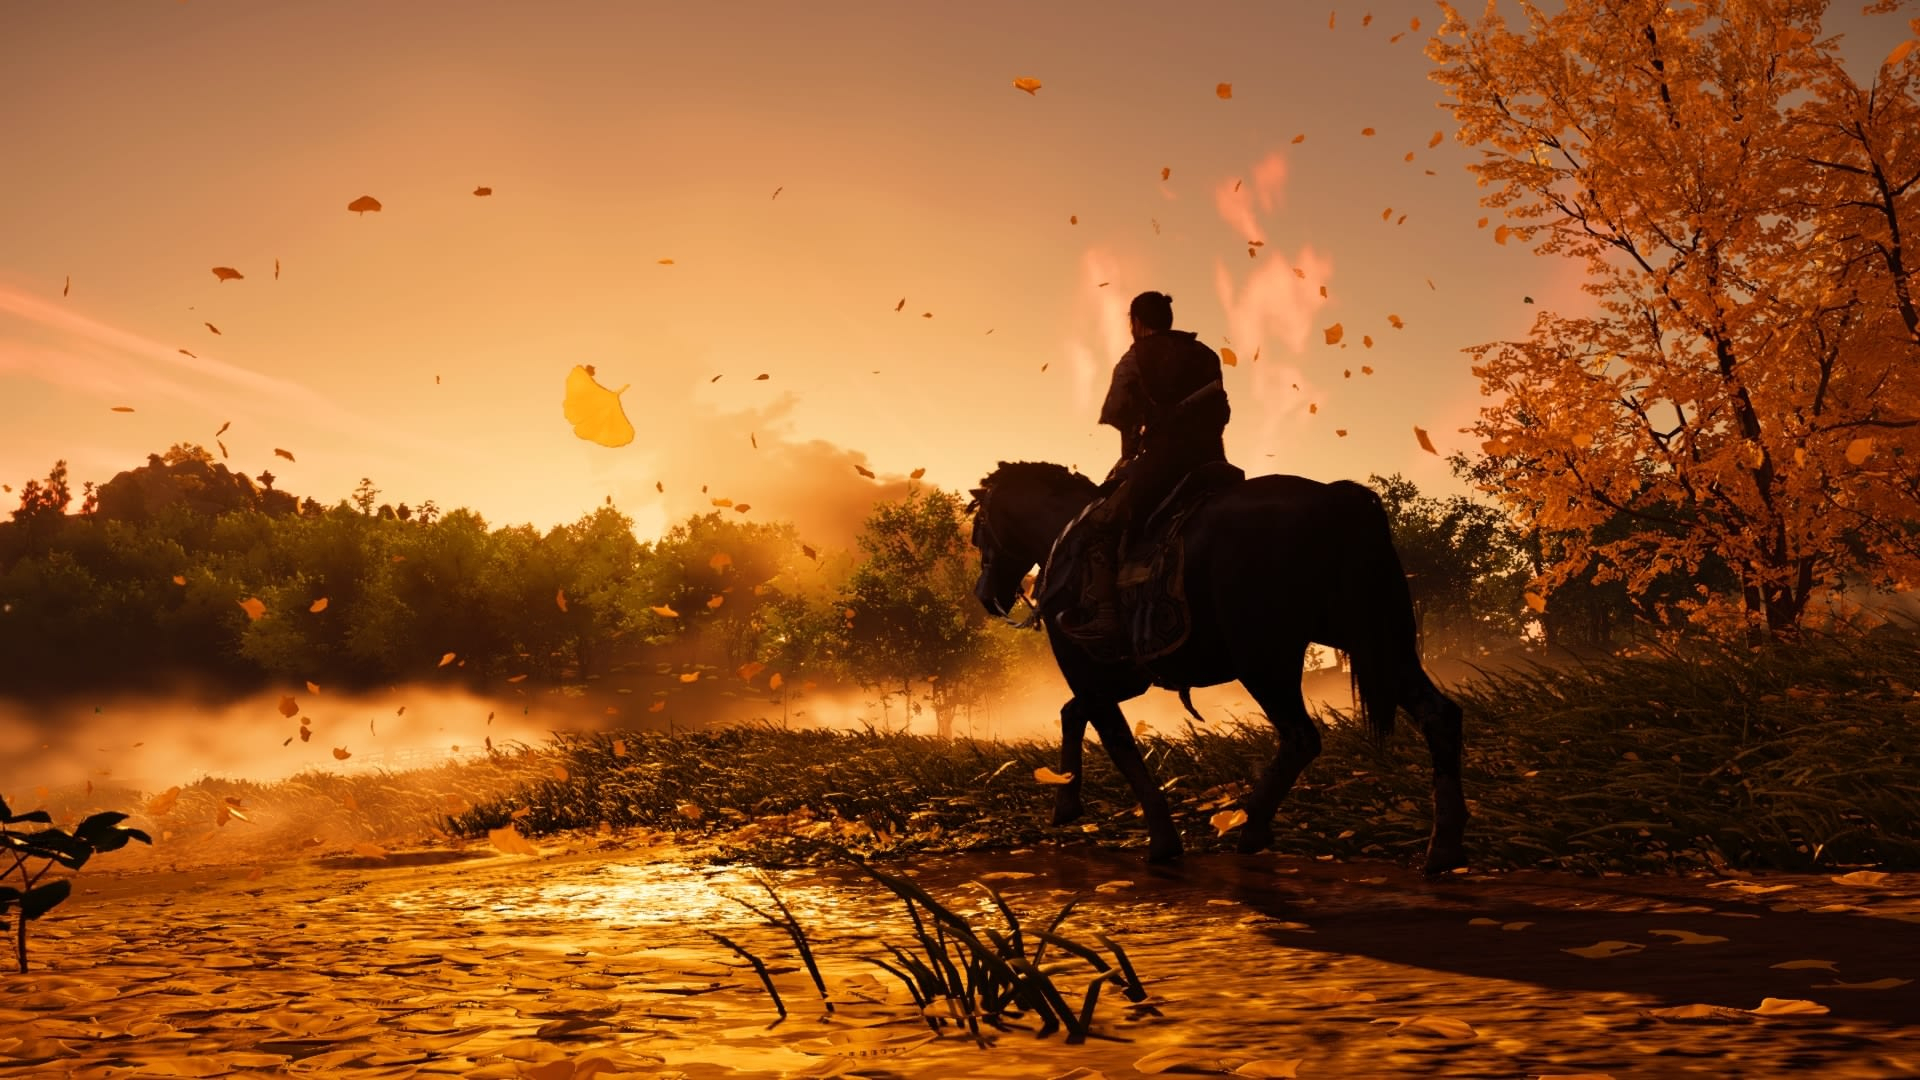 Ghost of Tsushima и Ori and the Will of the Wisps лидируют по числу номинаций на SXSW Gaming Awards 2021